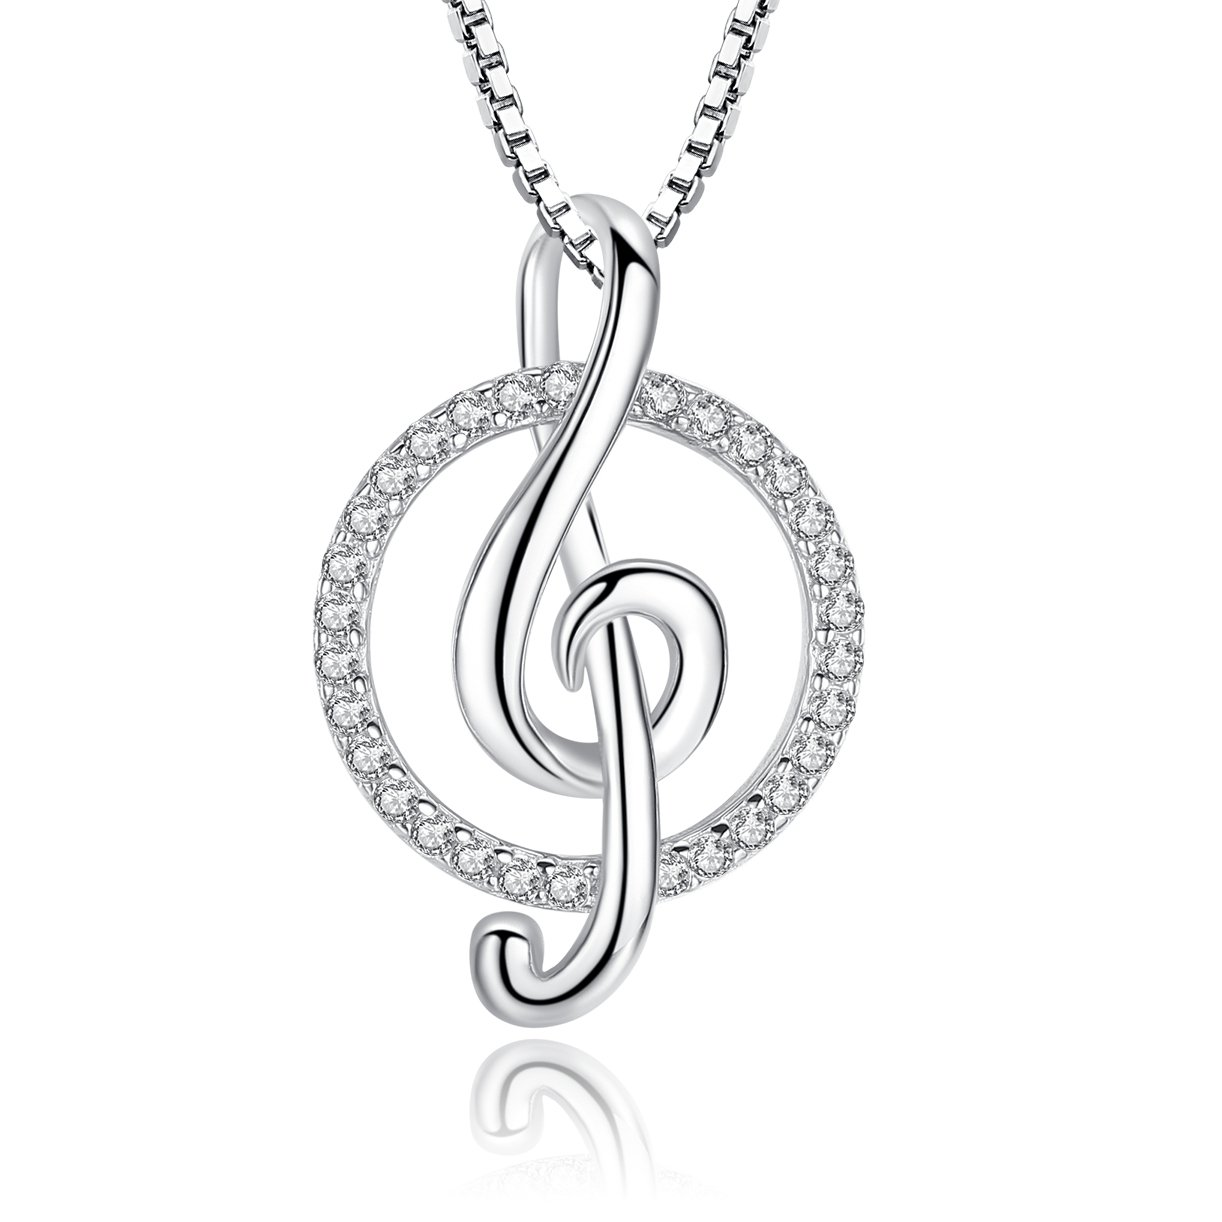 Greendin Sterling Silver Musical Note Necklace Pendant CZ Jewelry Women Girls, 18'' (cicle)